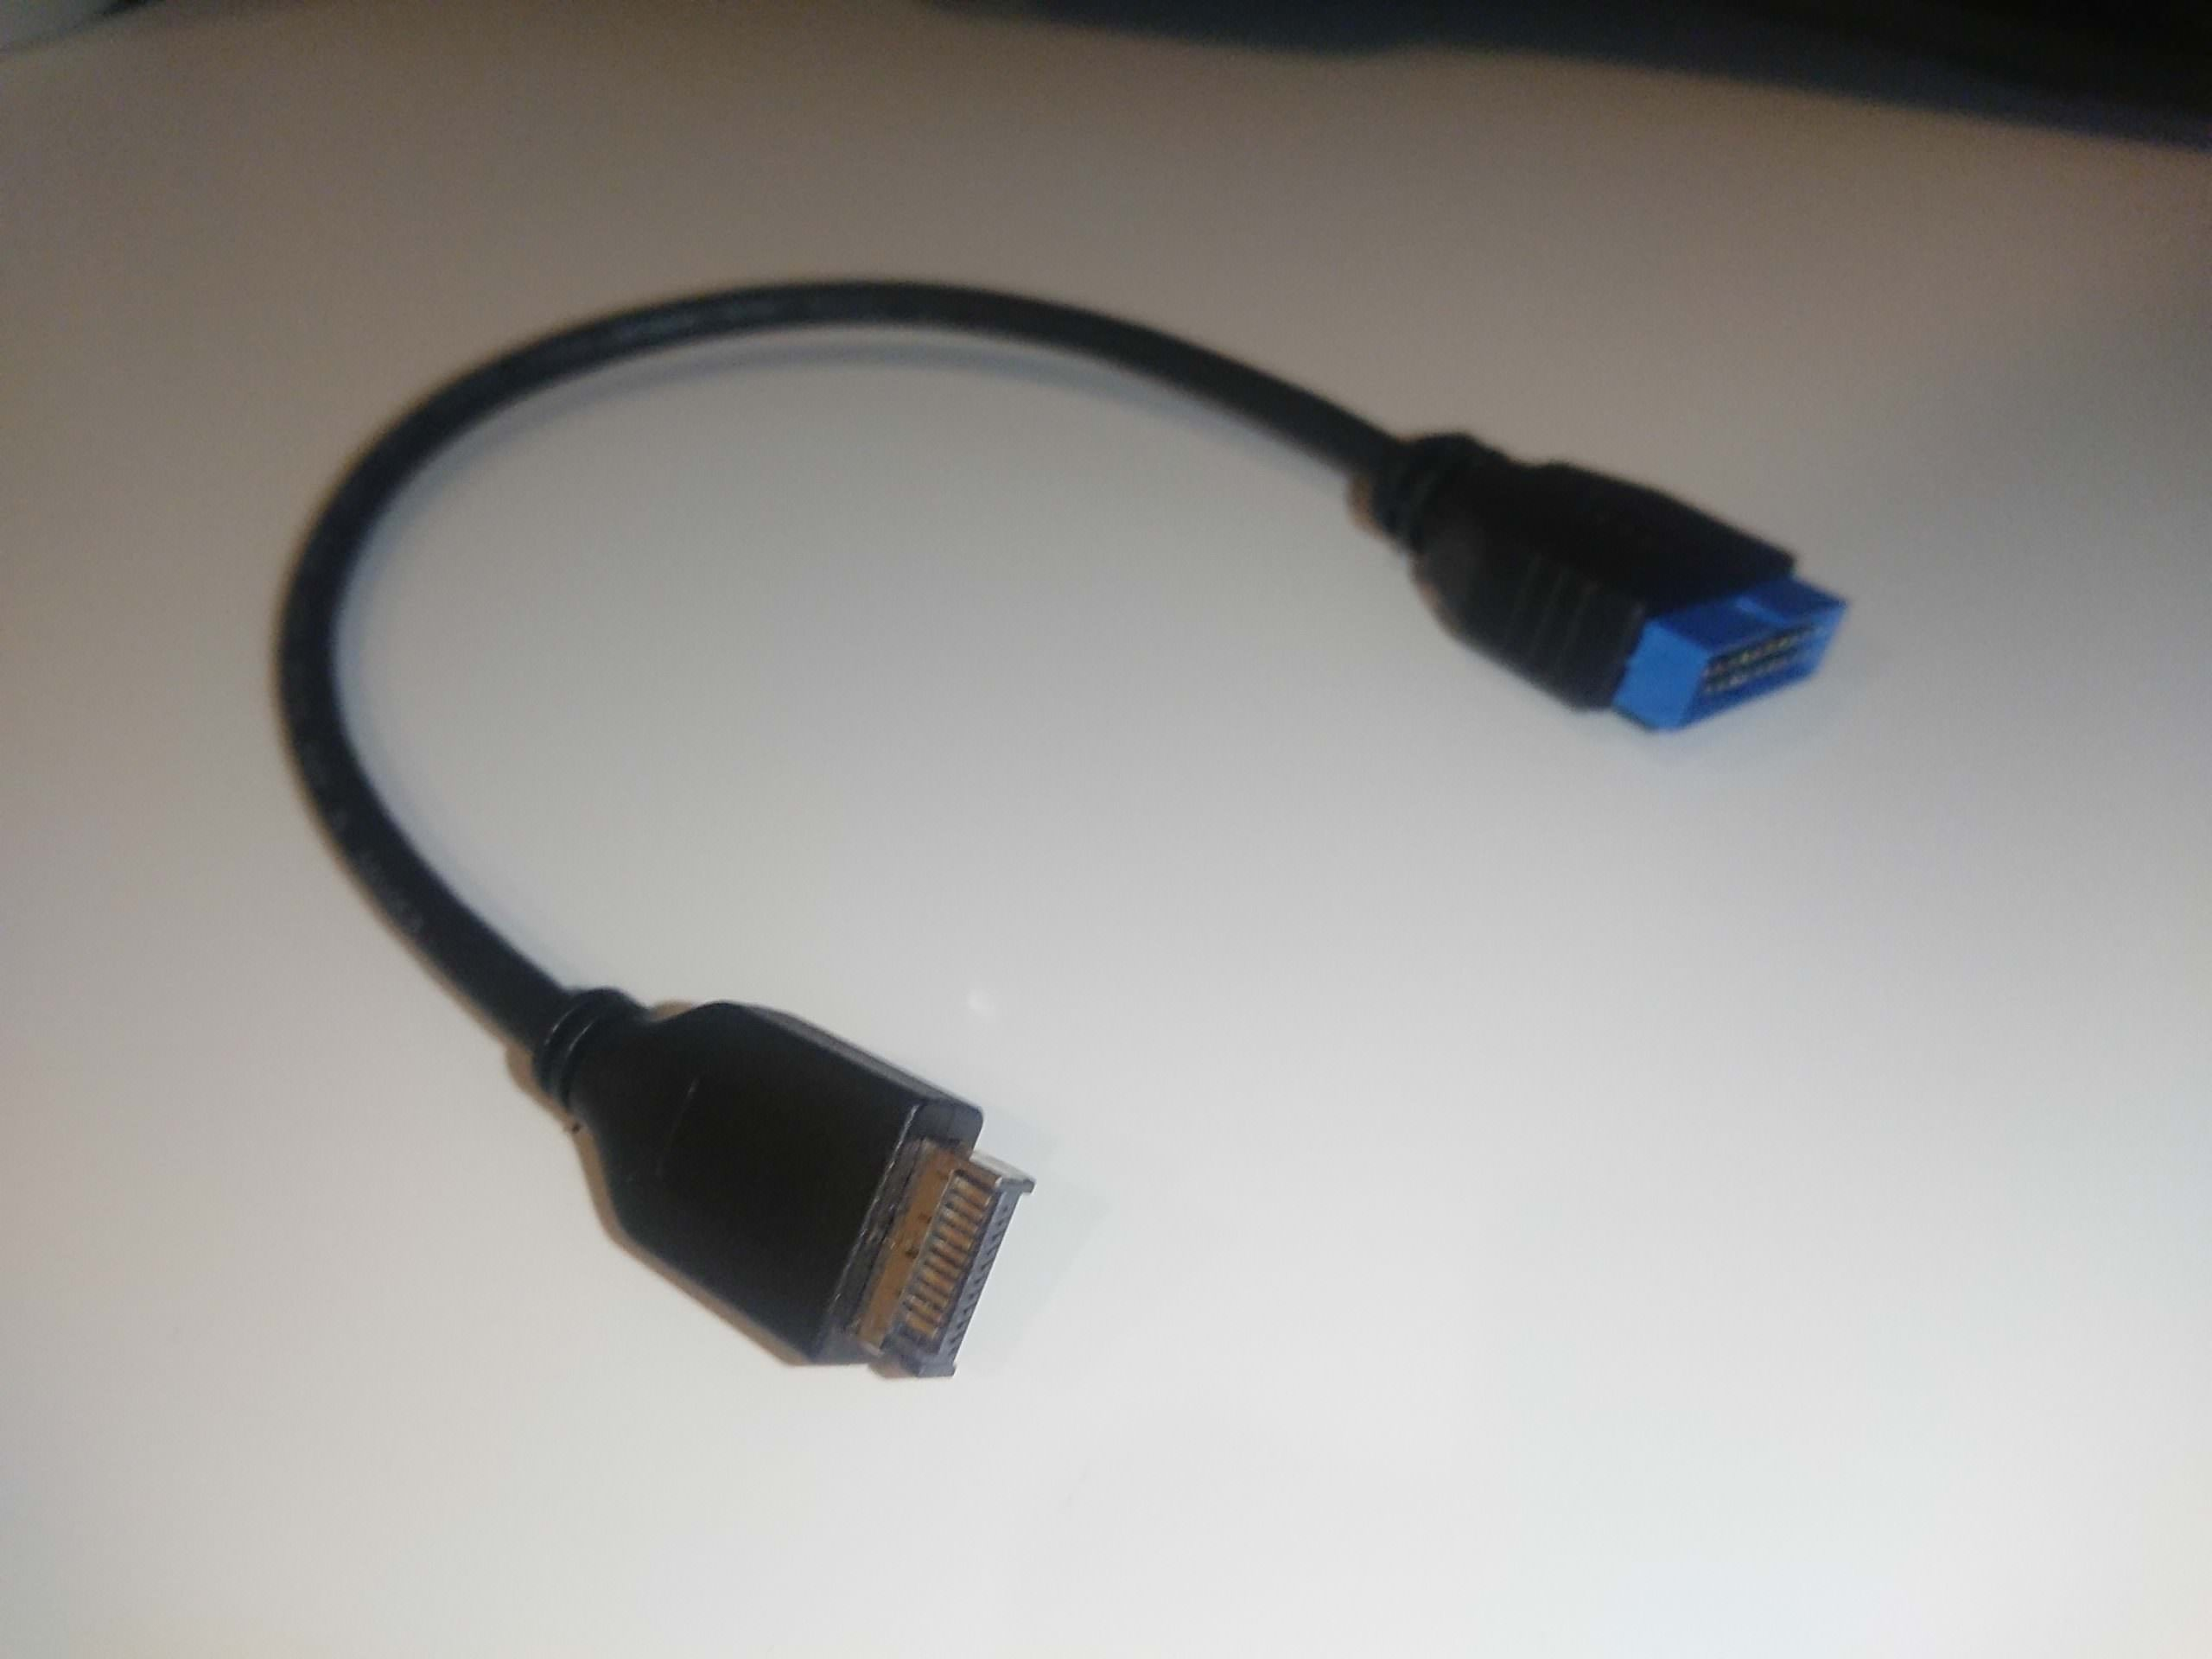 USB 3.1 to USB 3.0 cable